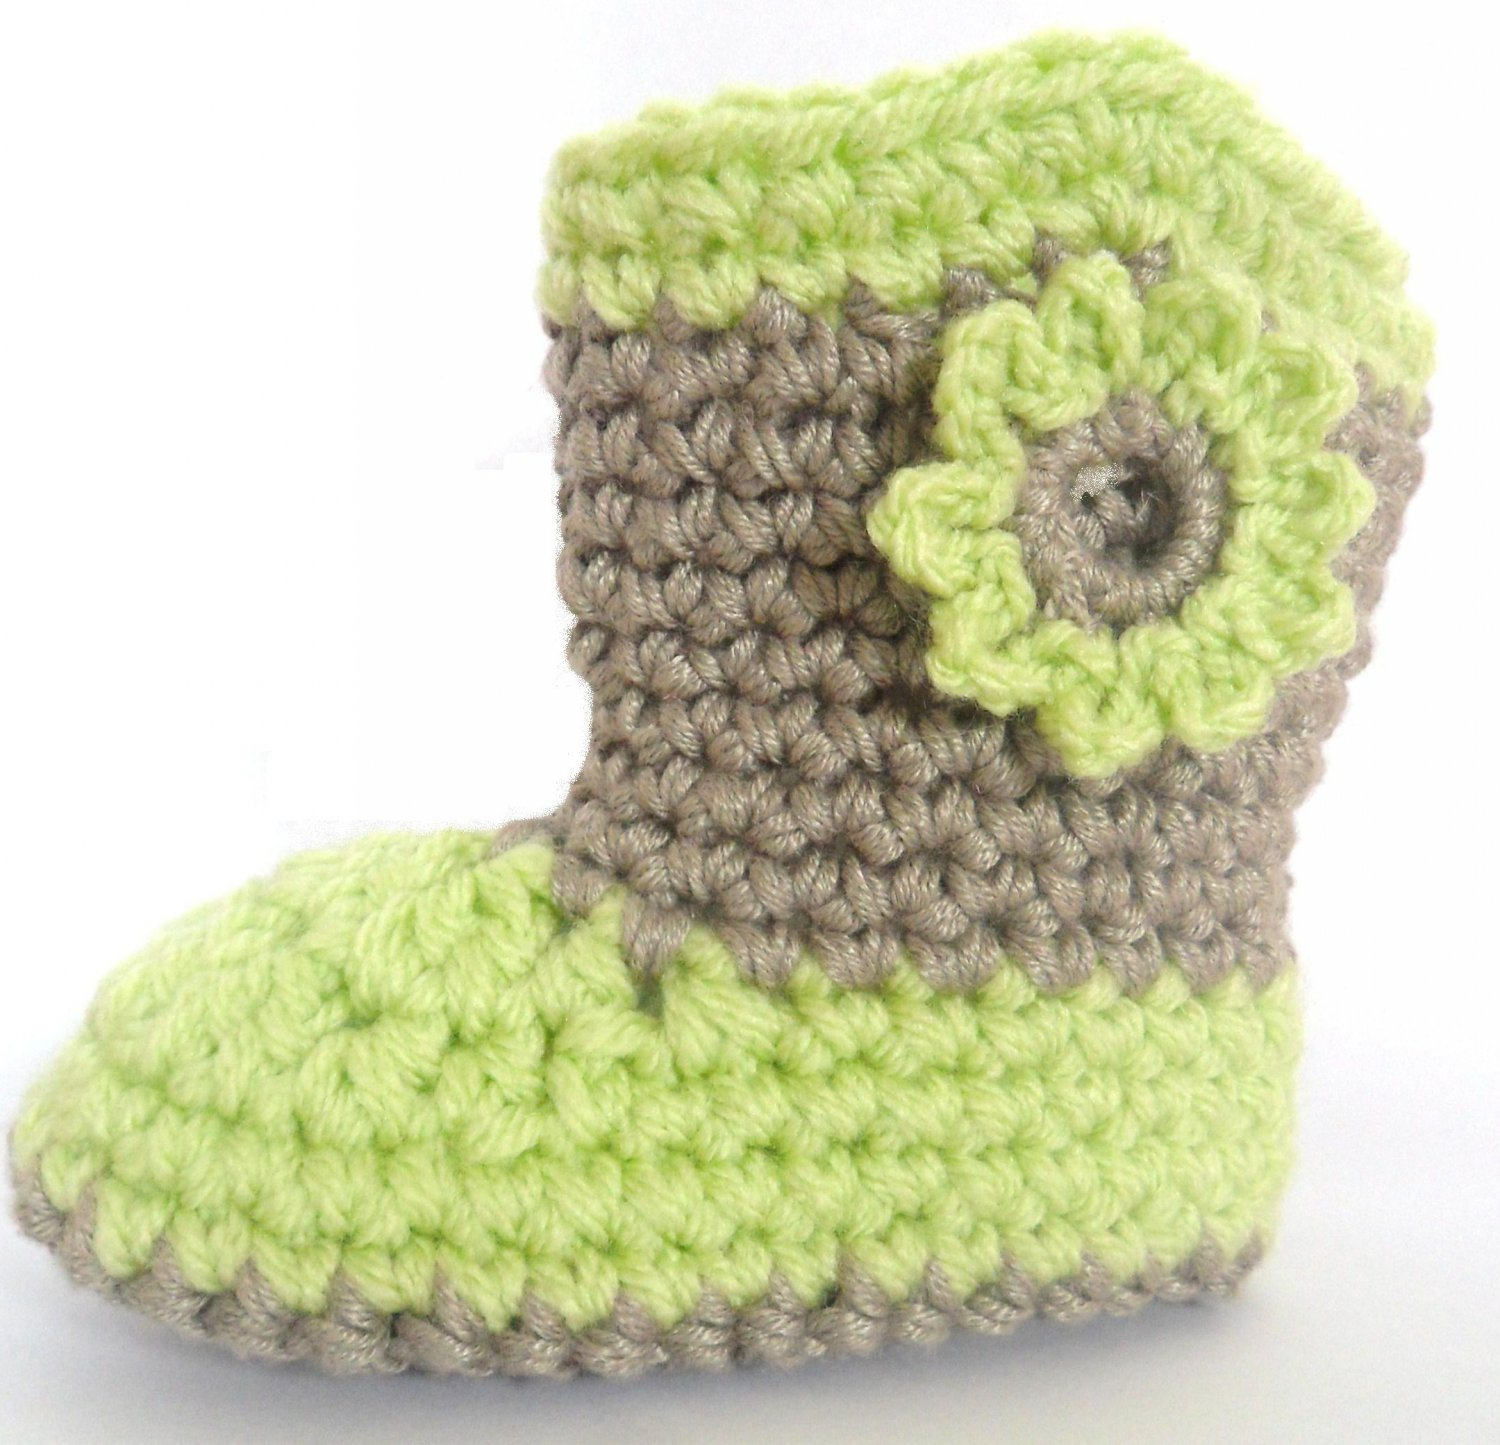 Unisex Baby Booties Free Crochet Pattern : VKNC119 Baby Boots Wooly Wellies Boy or Girl Crochet ...